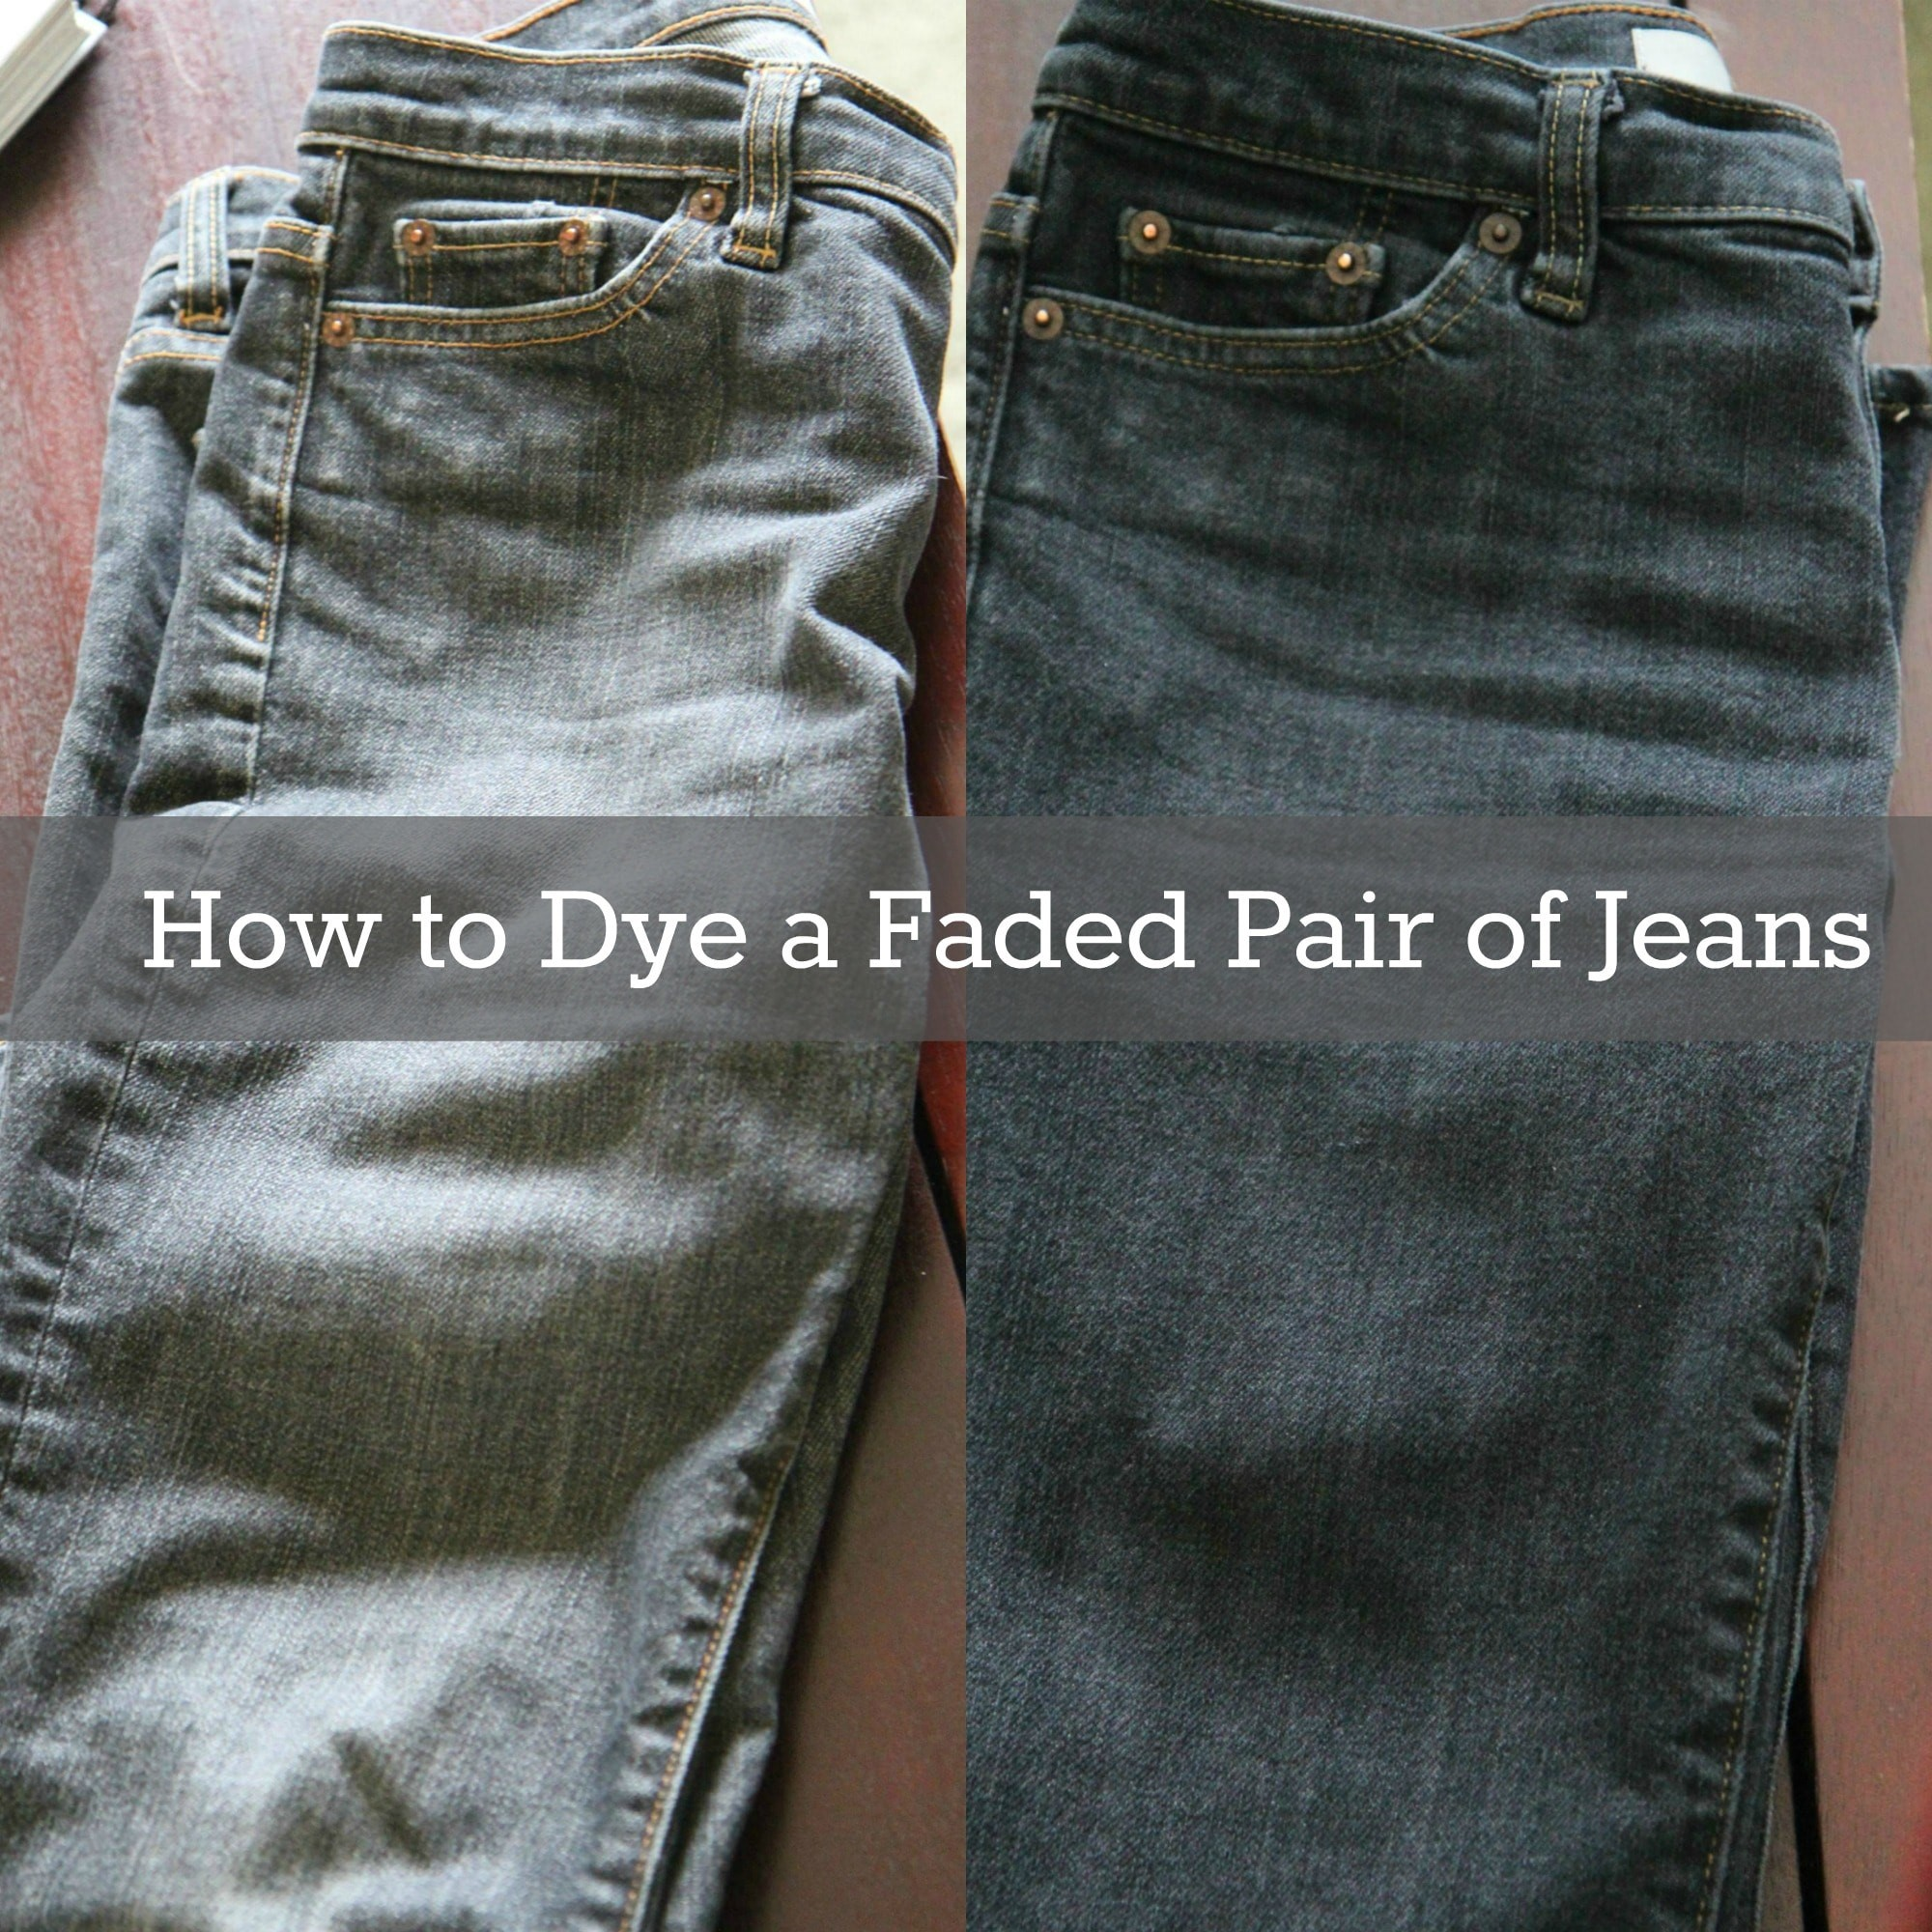 How to Dye a Faded Pair of Jeans from MomAdvice.com.